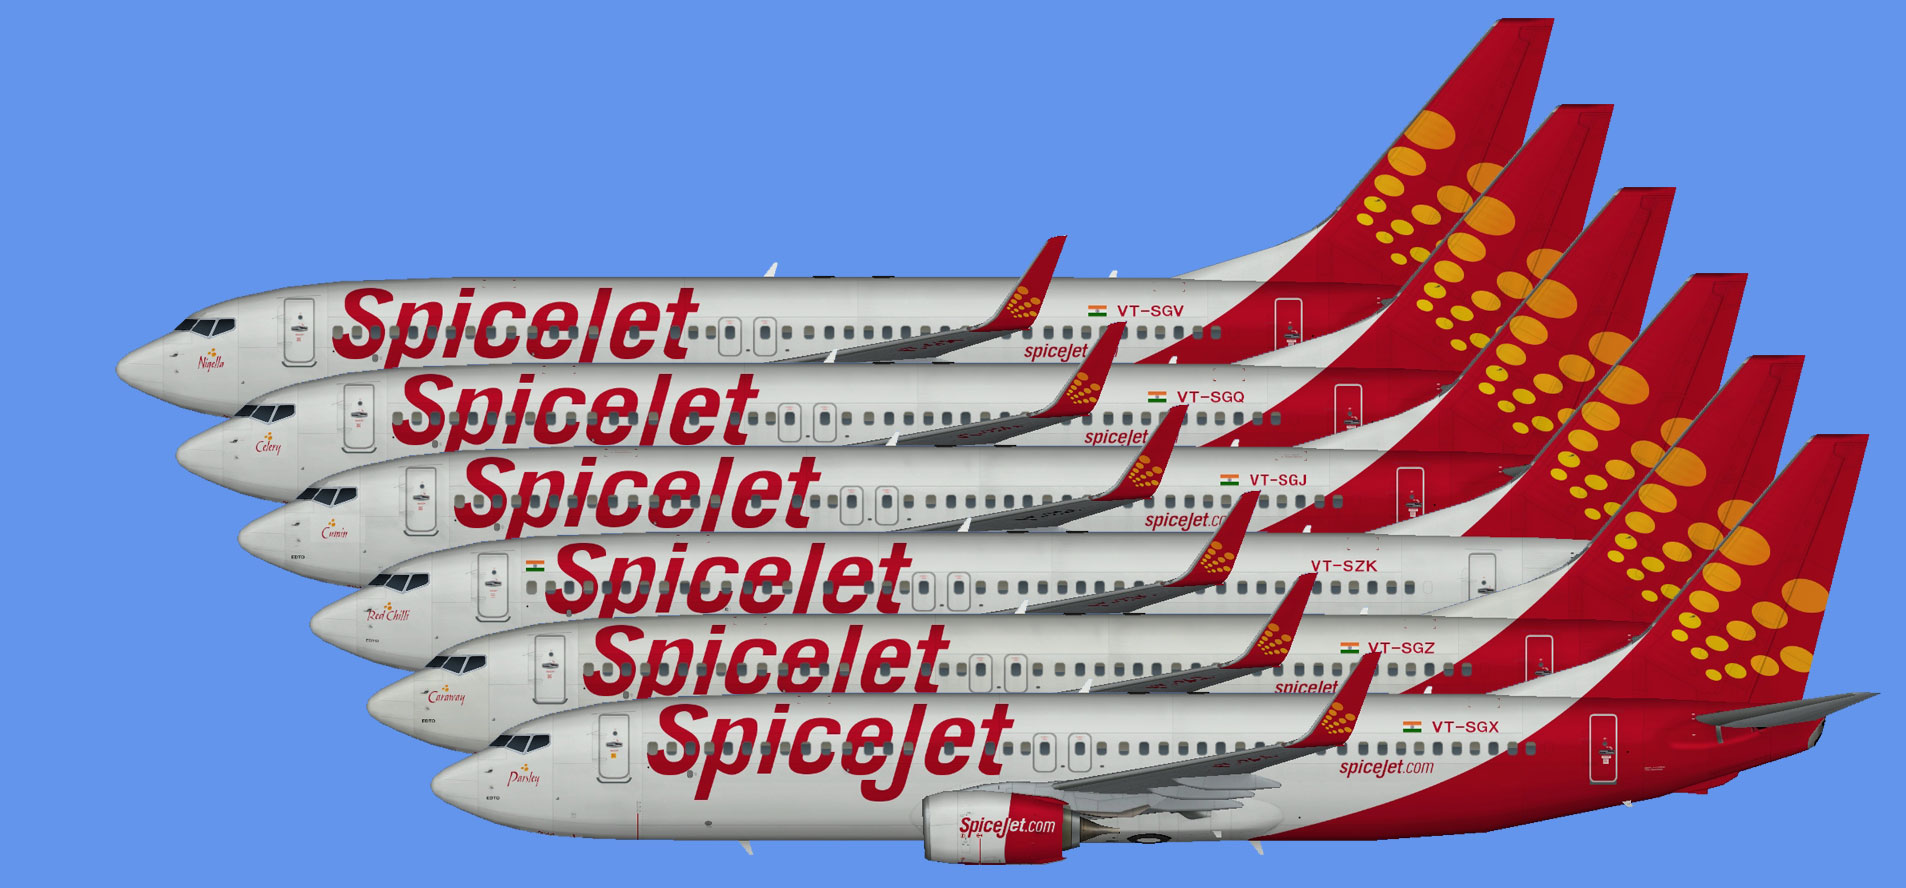 Spicejet 737-800 fleet -part2